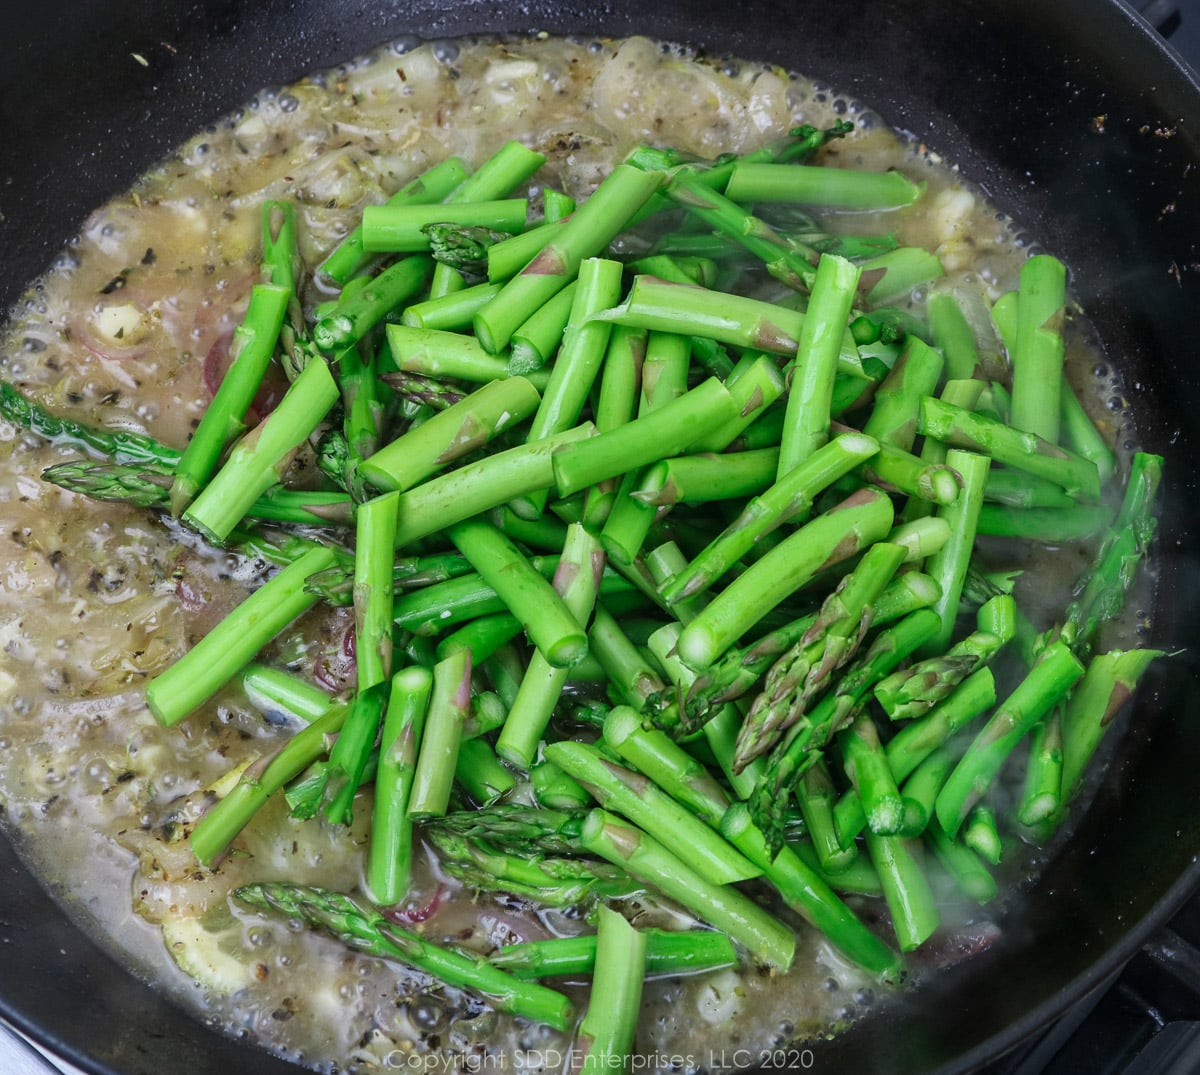 Sauteed asparagus in shallots and wine sauce